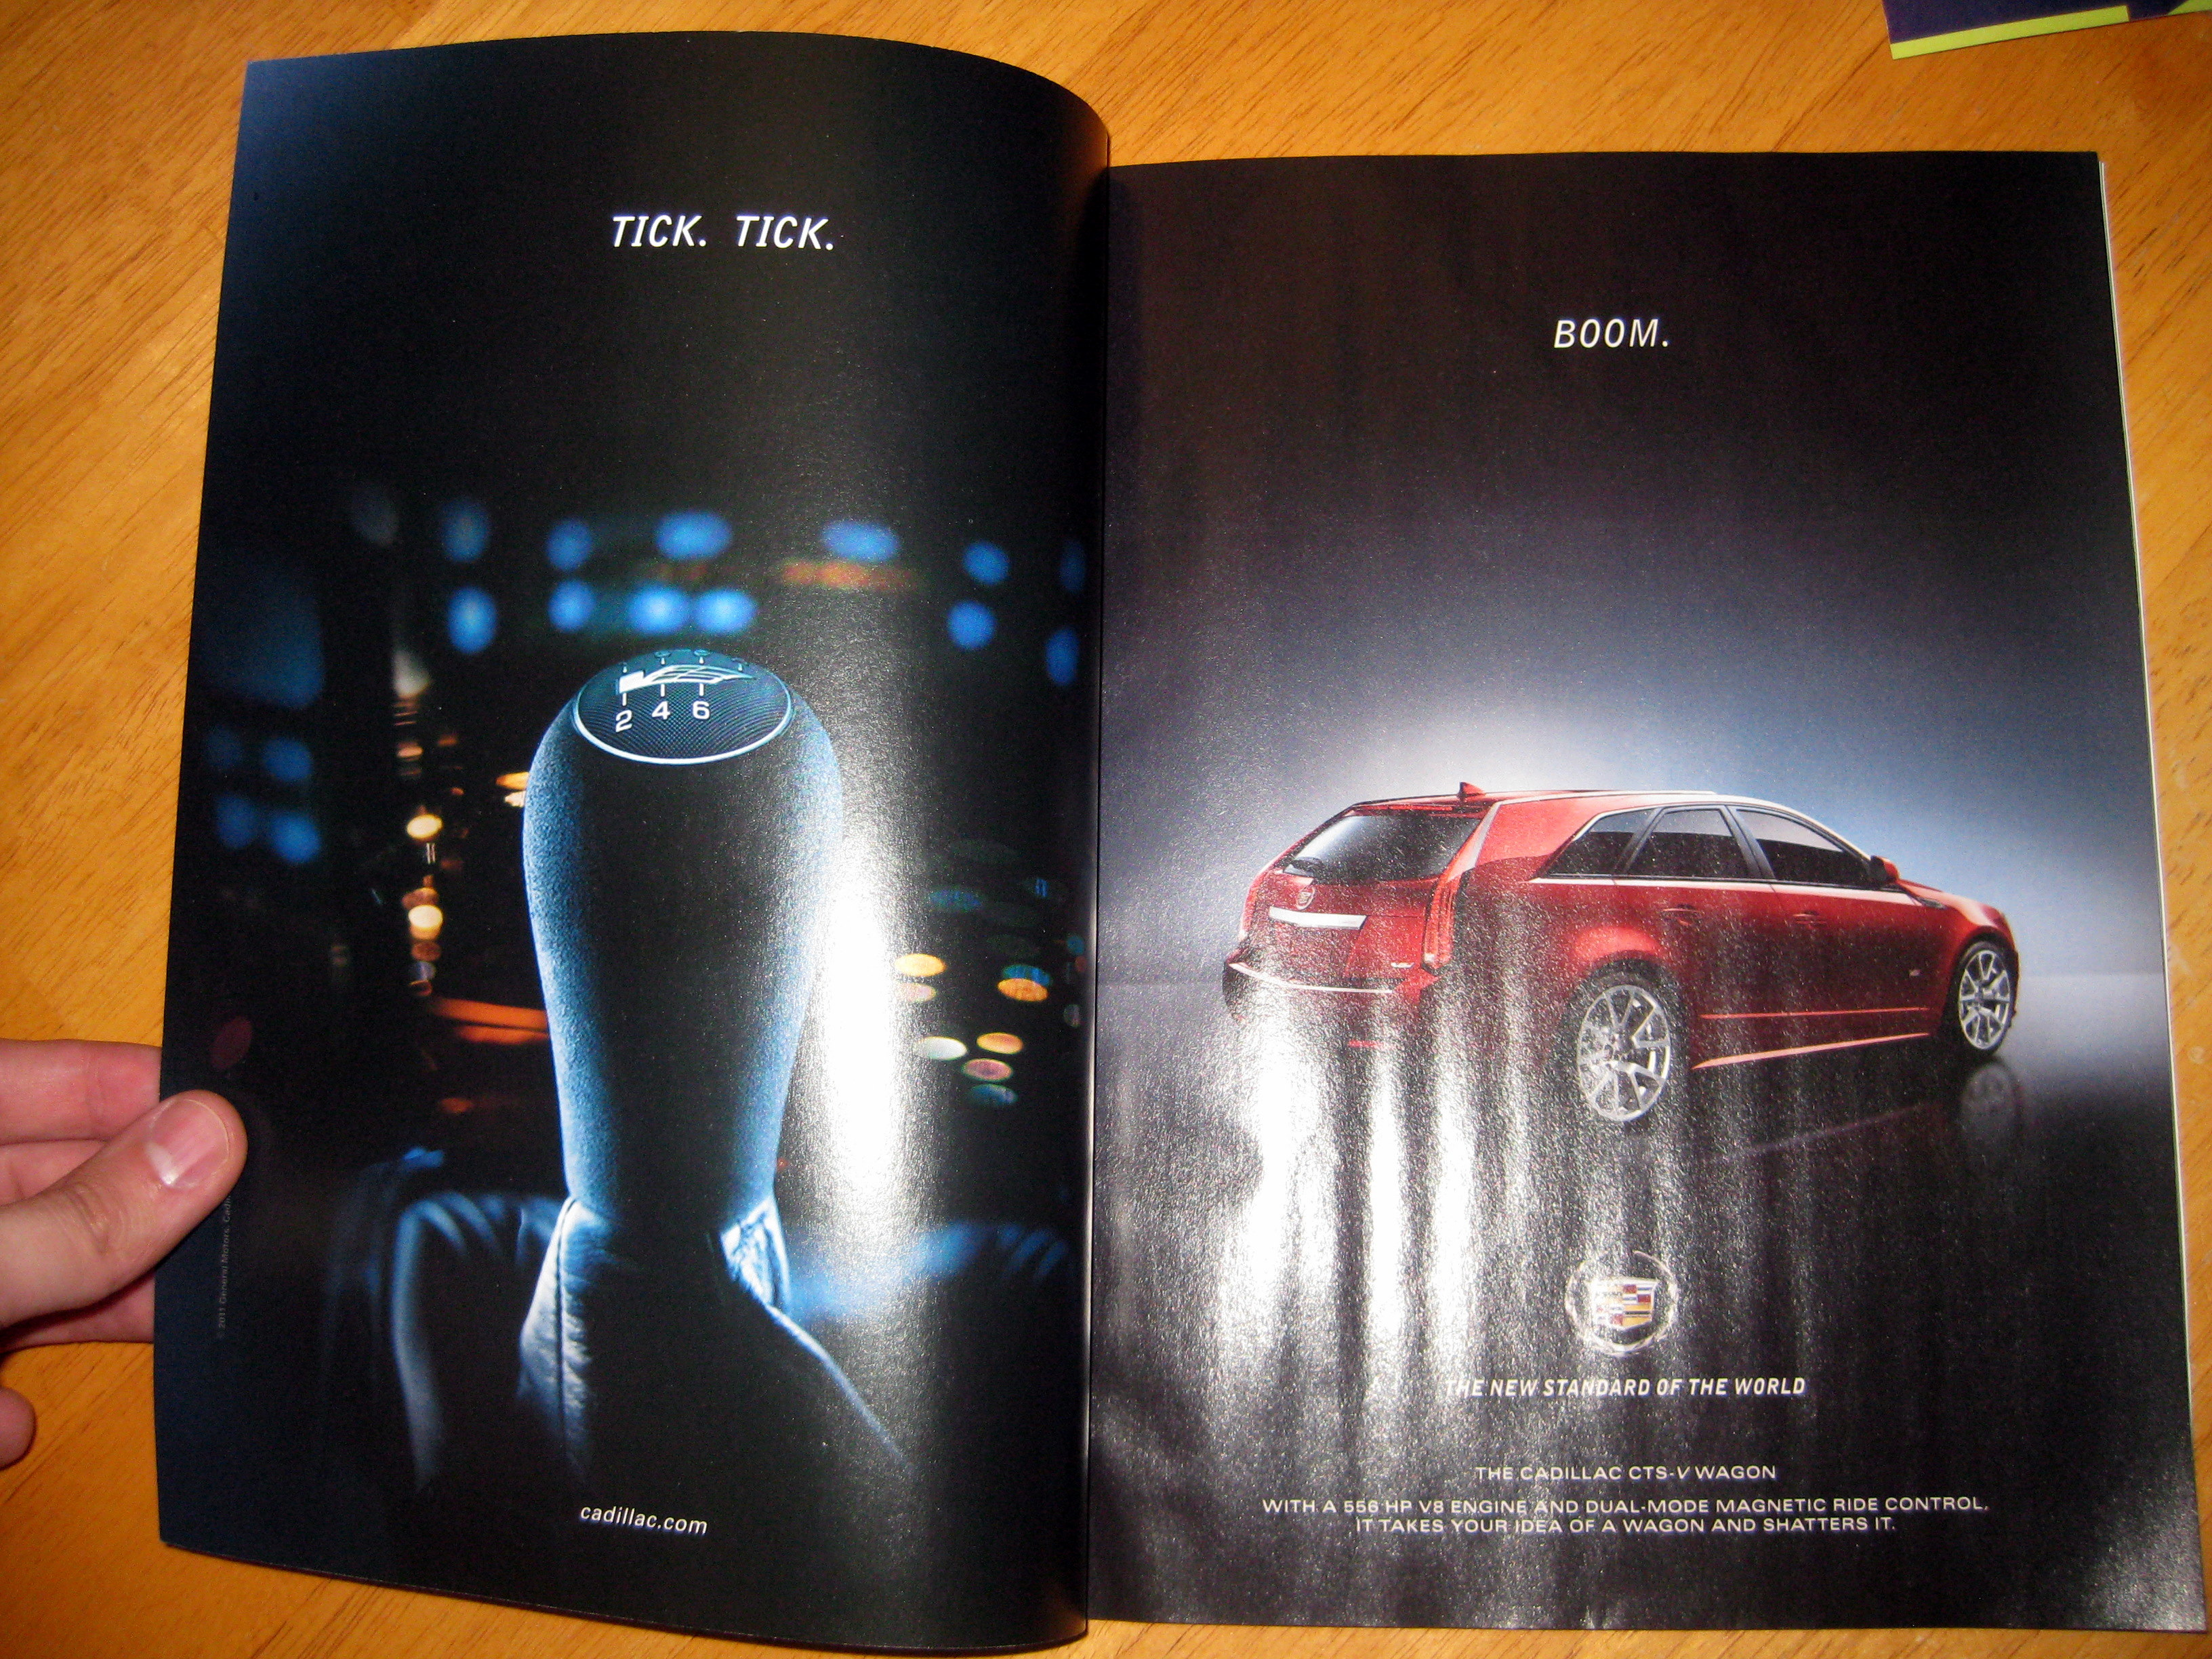 The inside front cover and first page - both ads.